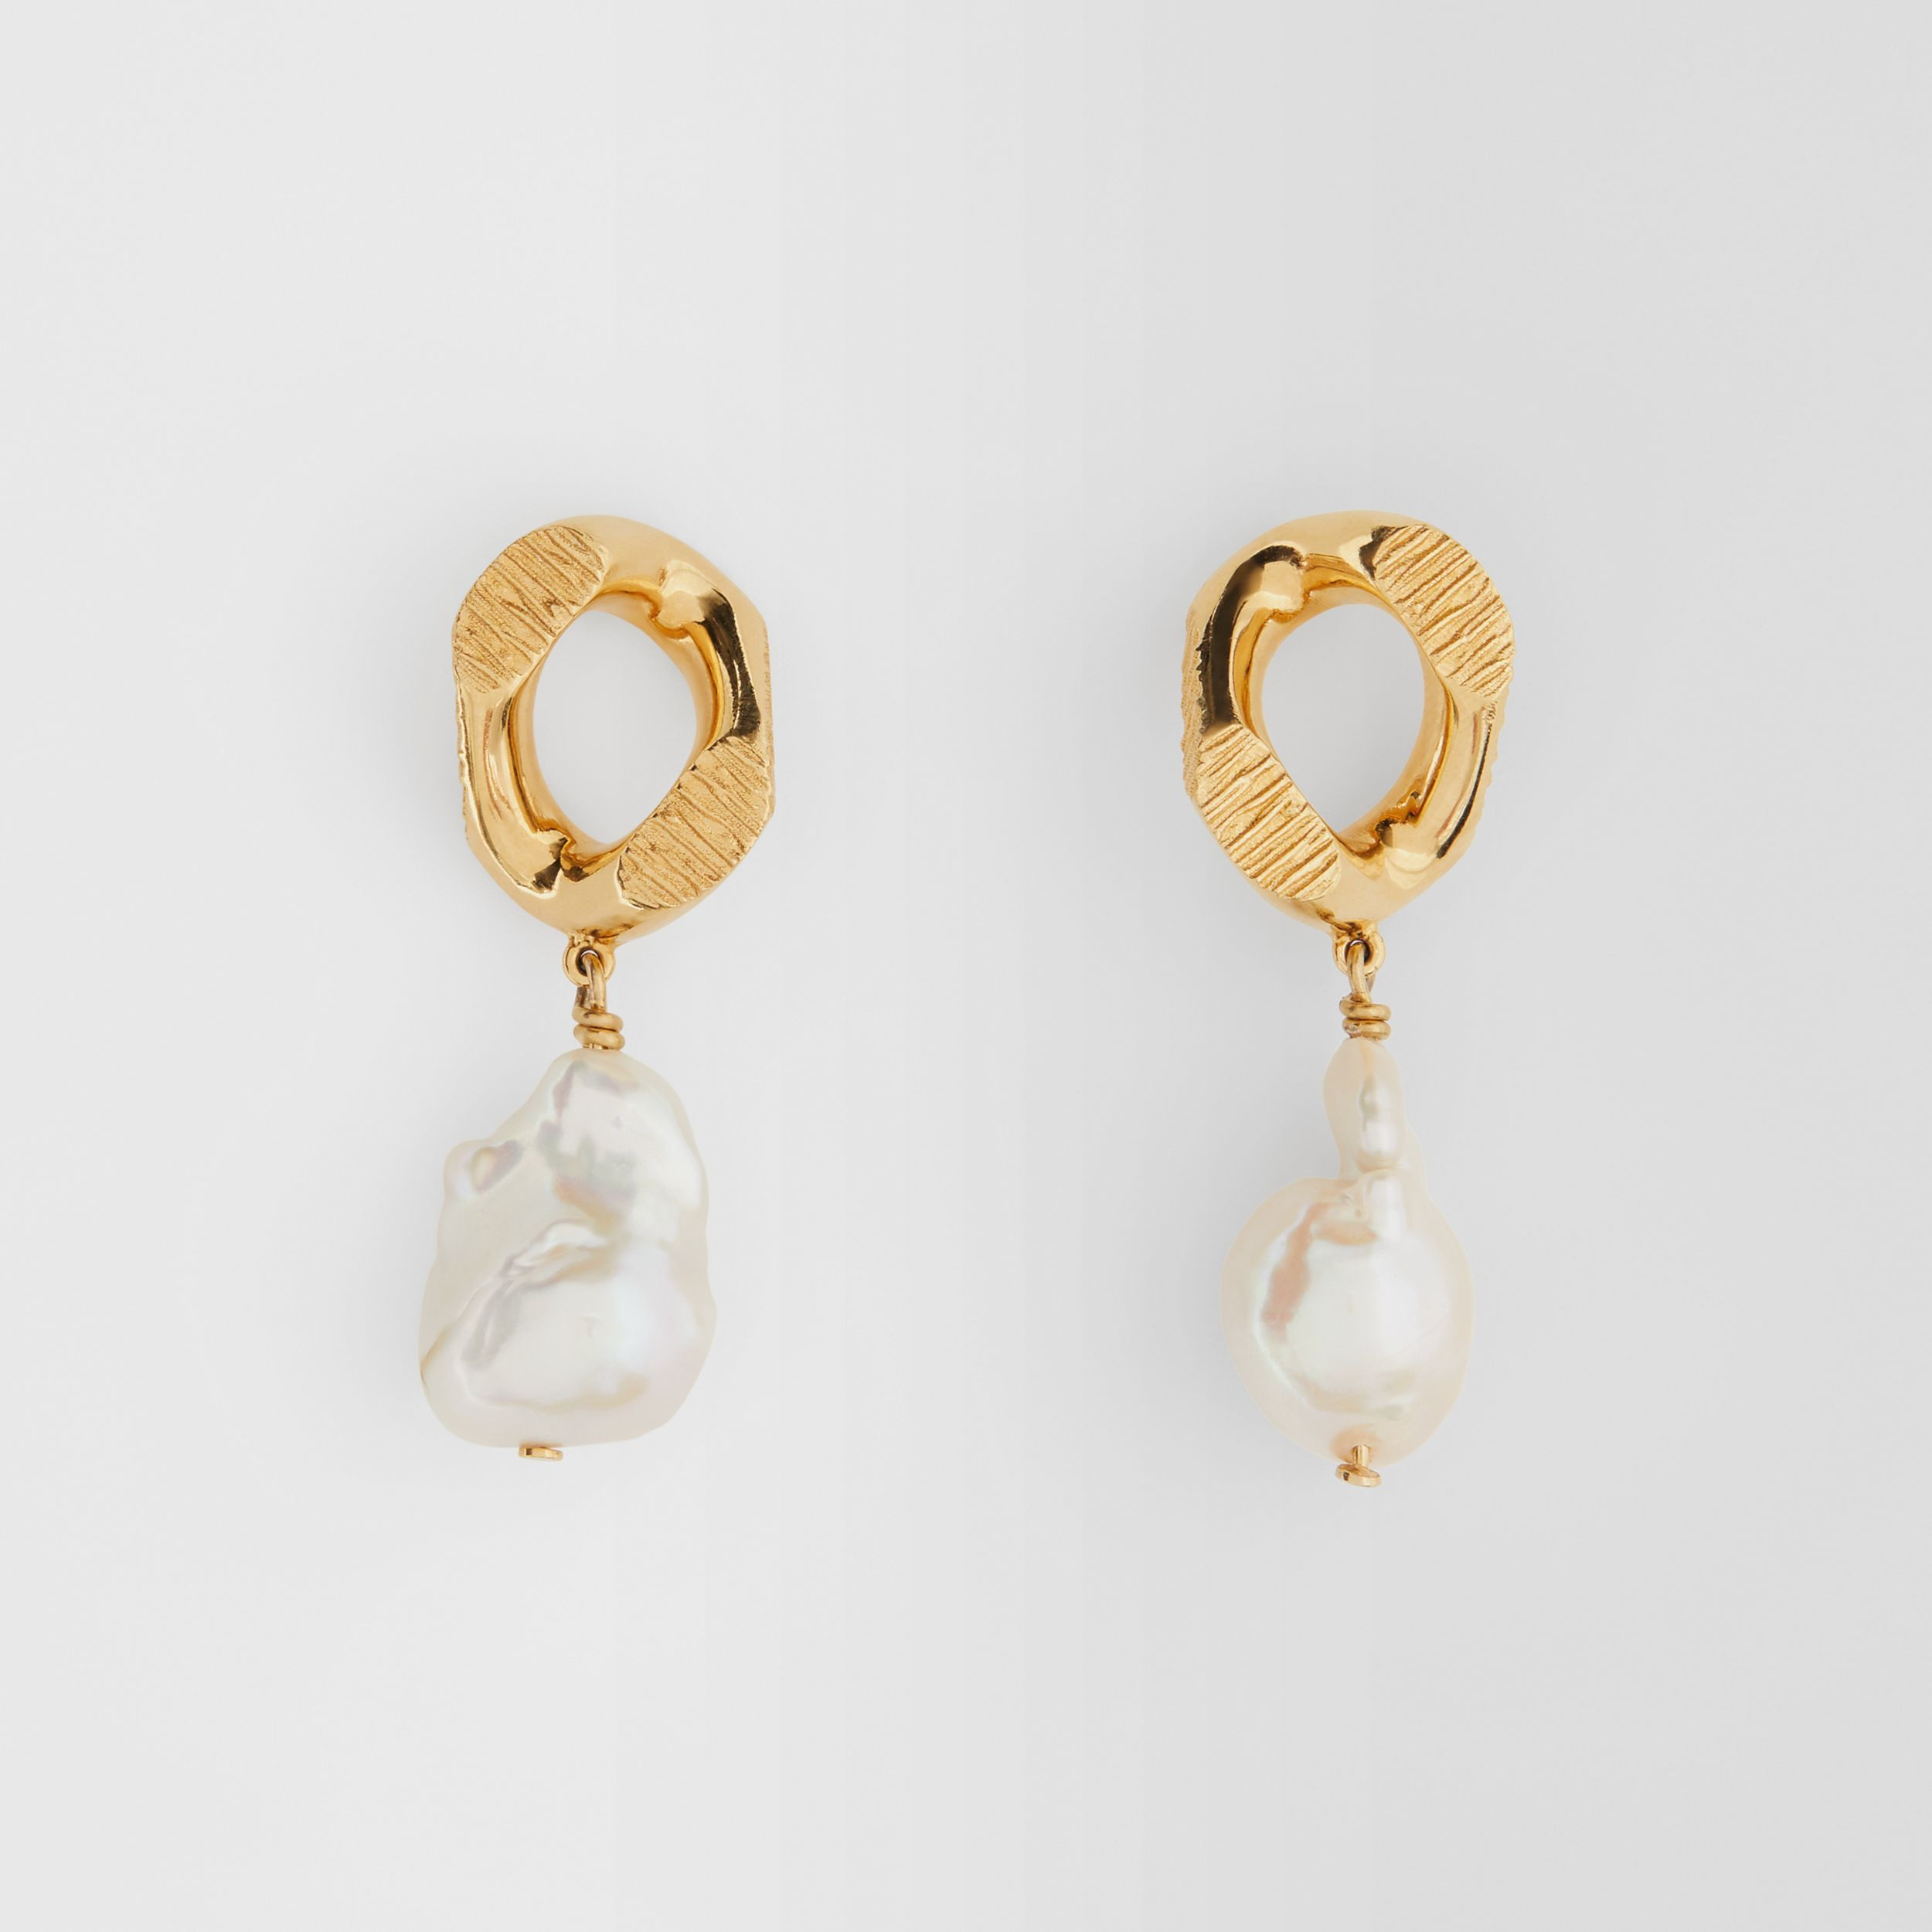 Pearl Detail Gold-plated Chain-link Earrings in Light Gold/white - Women | Burberry - 1